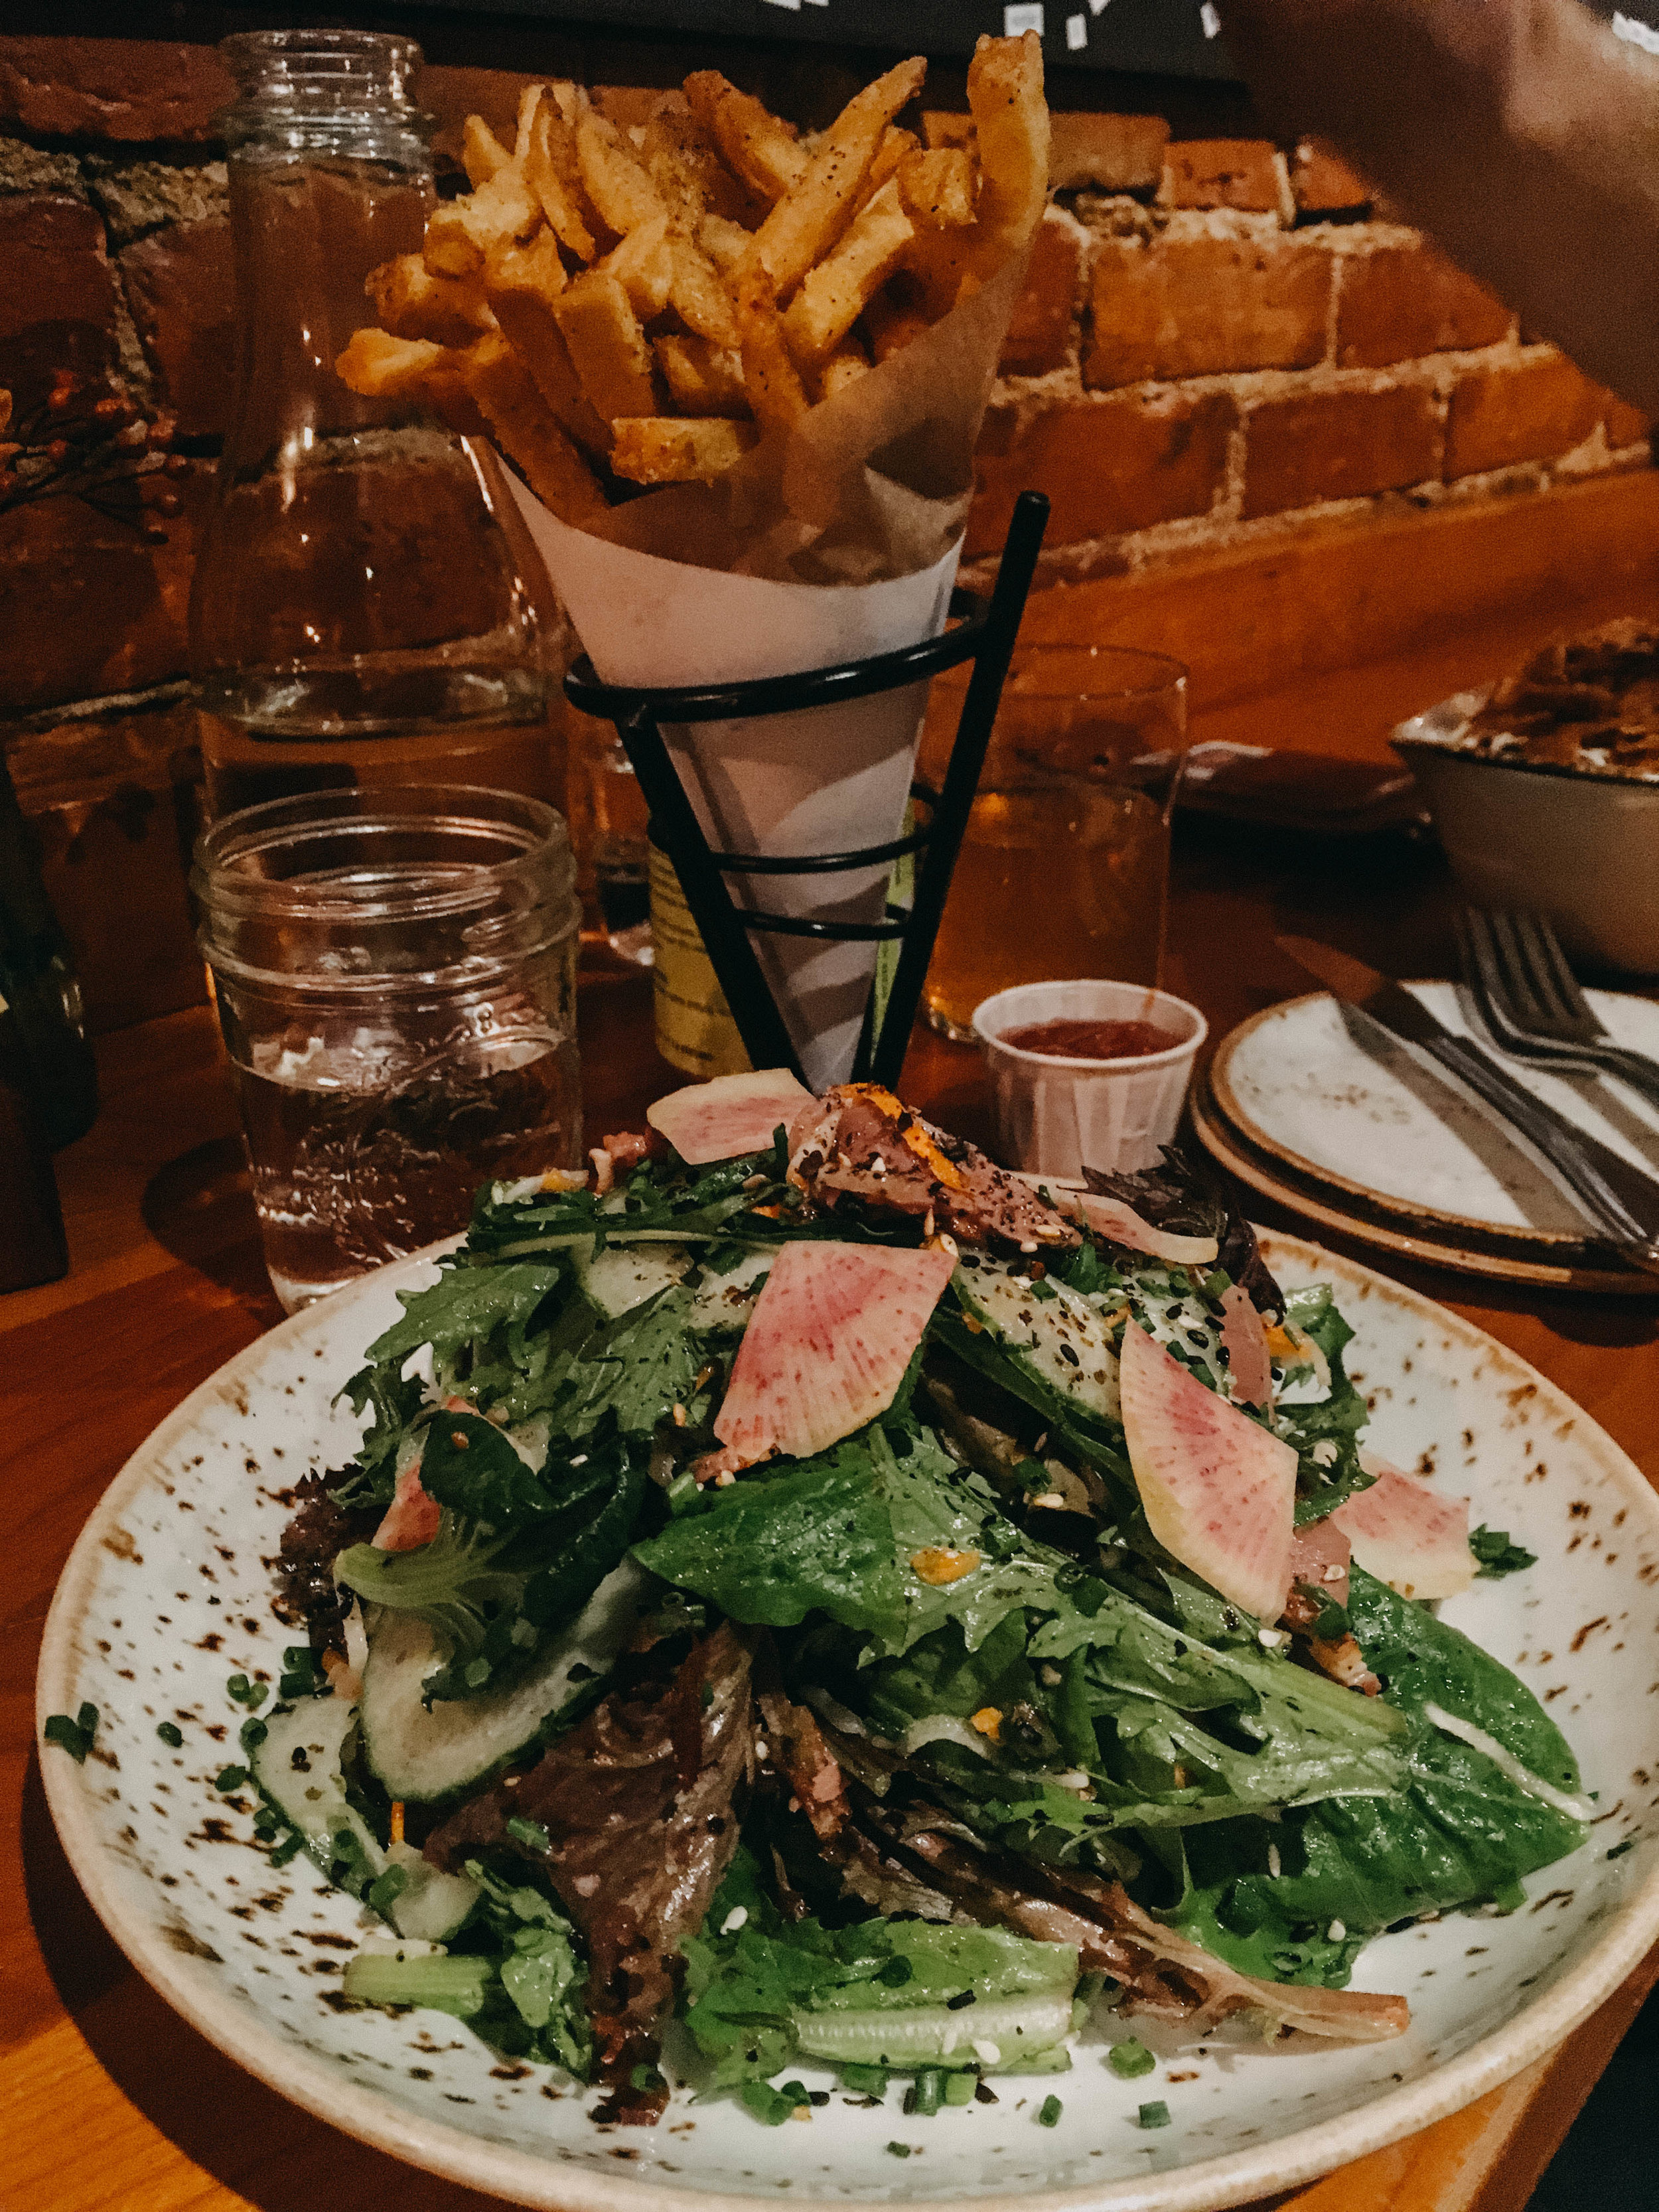 Duckfat, one word to sum that experience up would be DANGGGGGG! Their fries are cooked in duck fat, their salads have duck on them, it's just mind blowing and so goooood! This was the one meal that I cheated and ate something I wasn't suppose to...